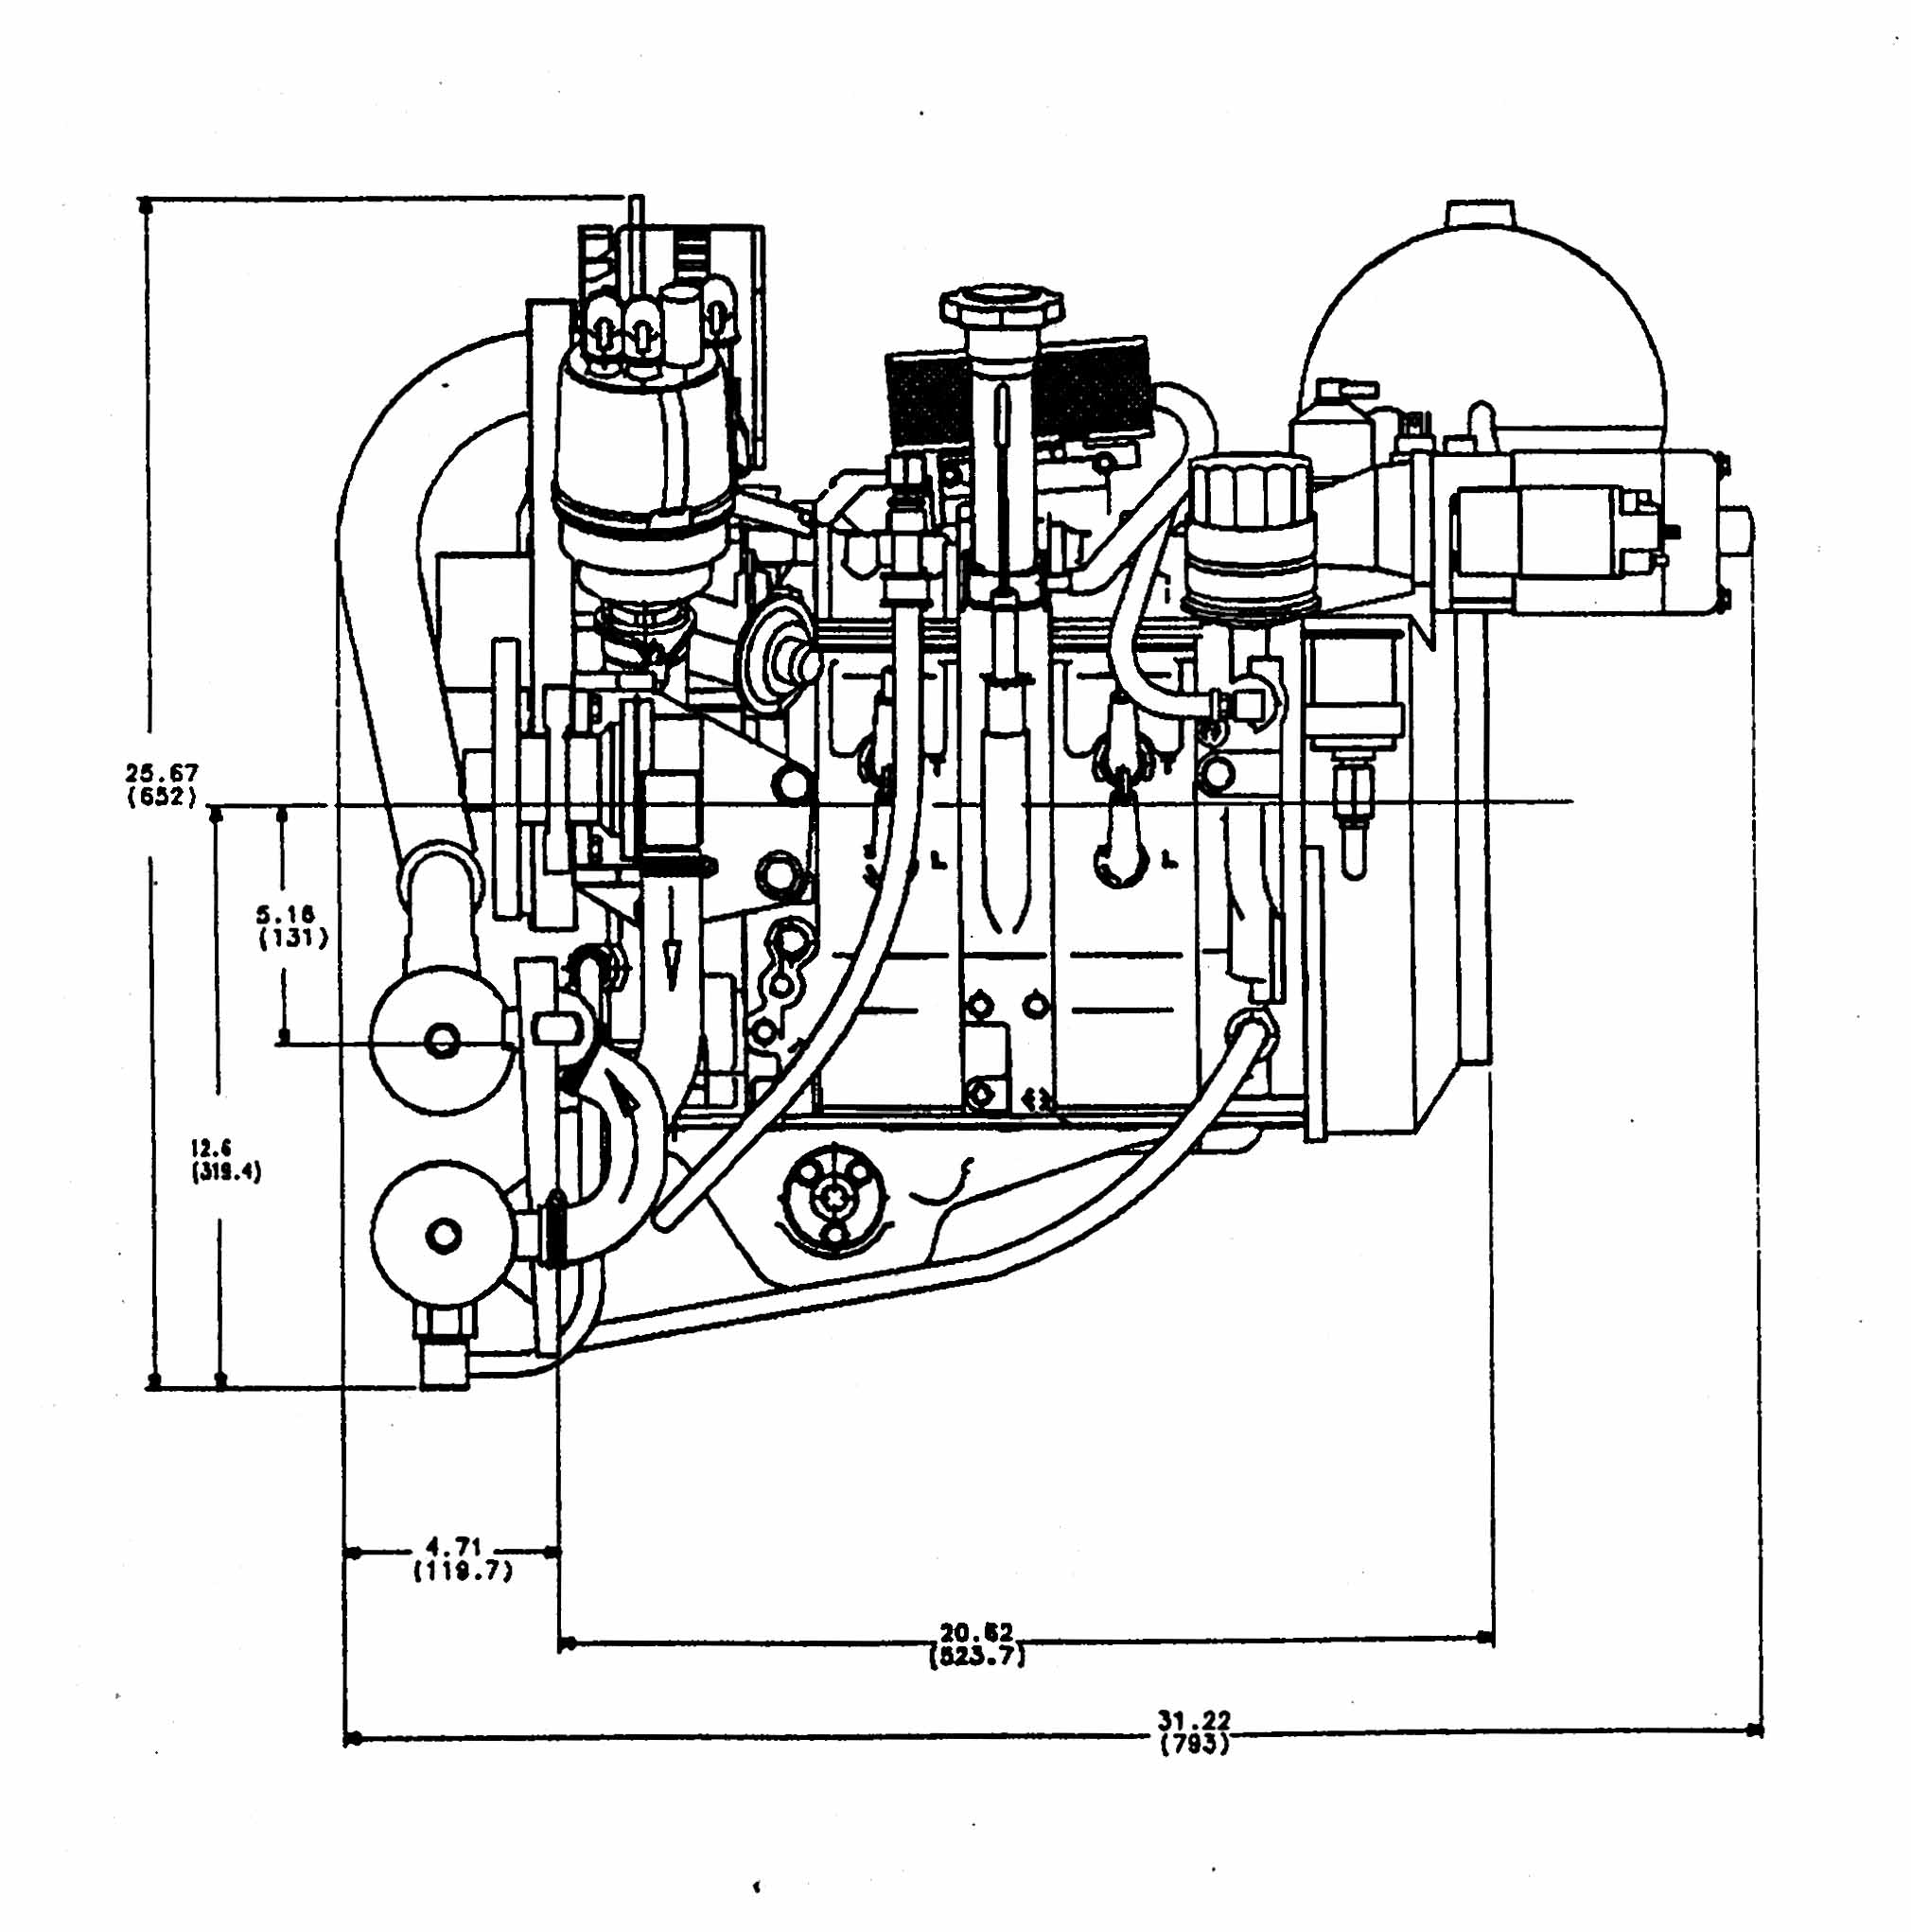 G30 Bmw Stereo Wiring Diagram